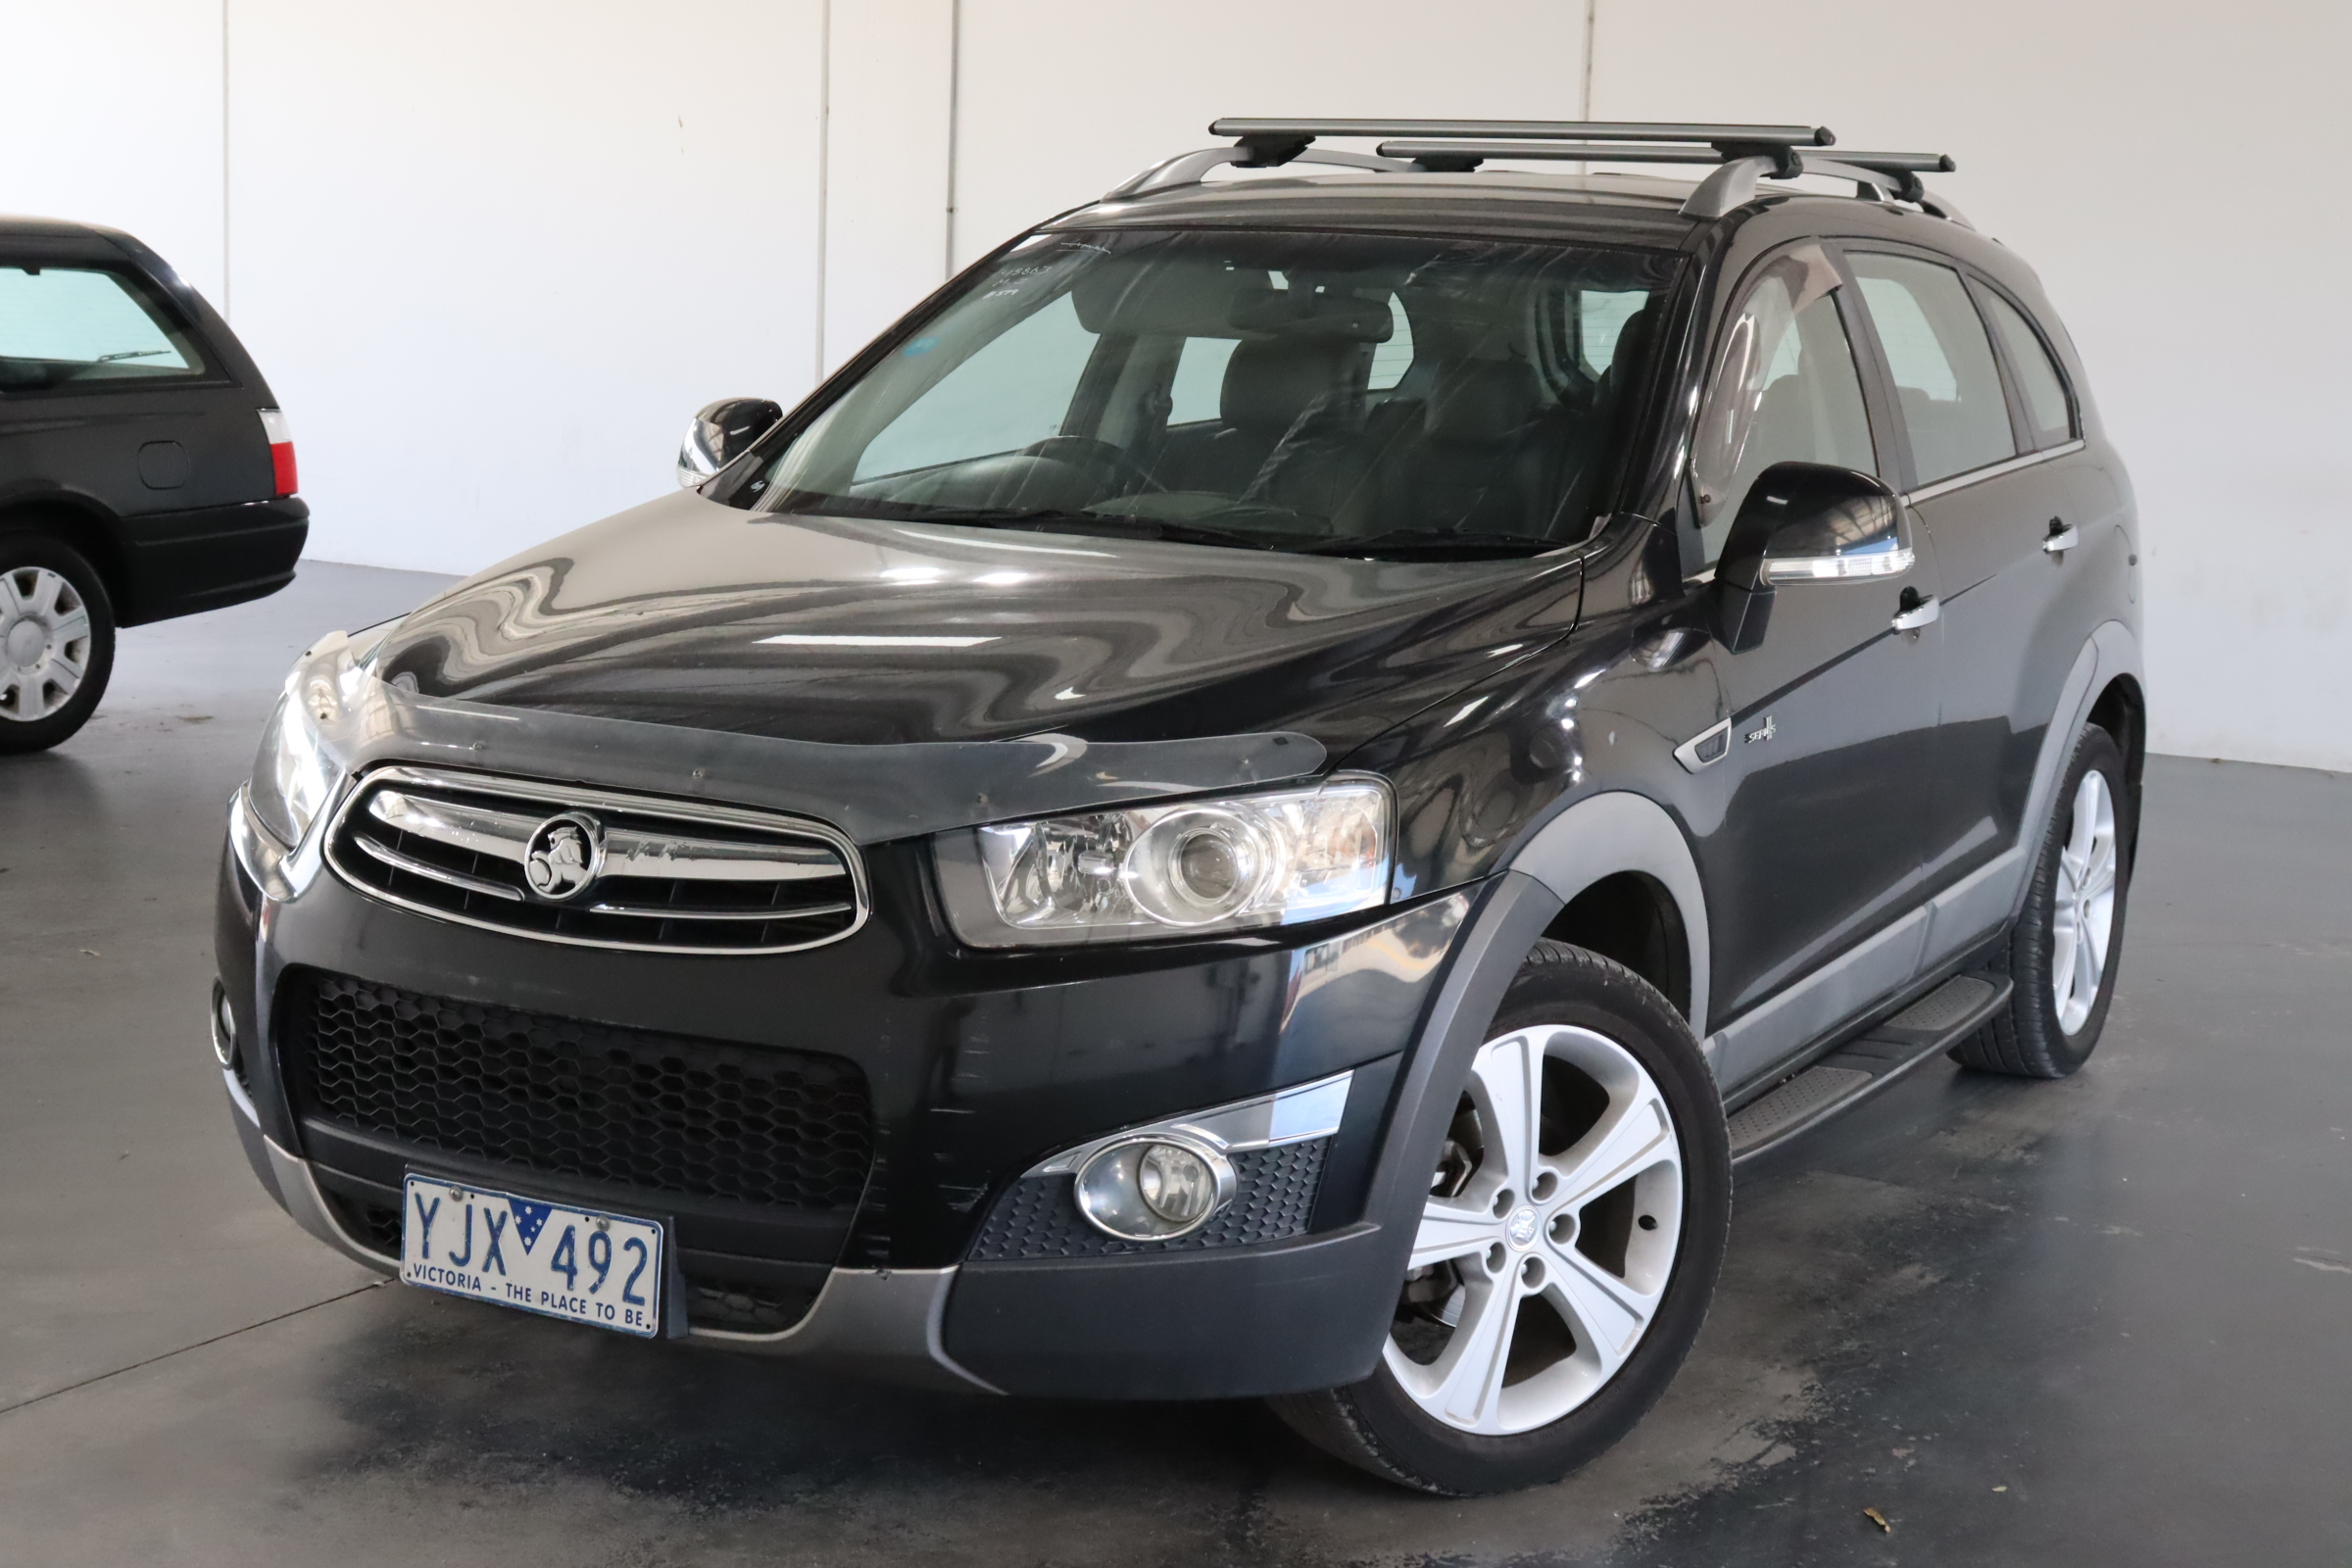 2011 Holden Captiva 7 LX AWD CG II Turbo Diesel Automatic 7 Seats Wagon